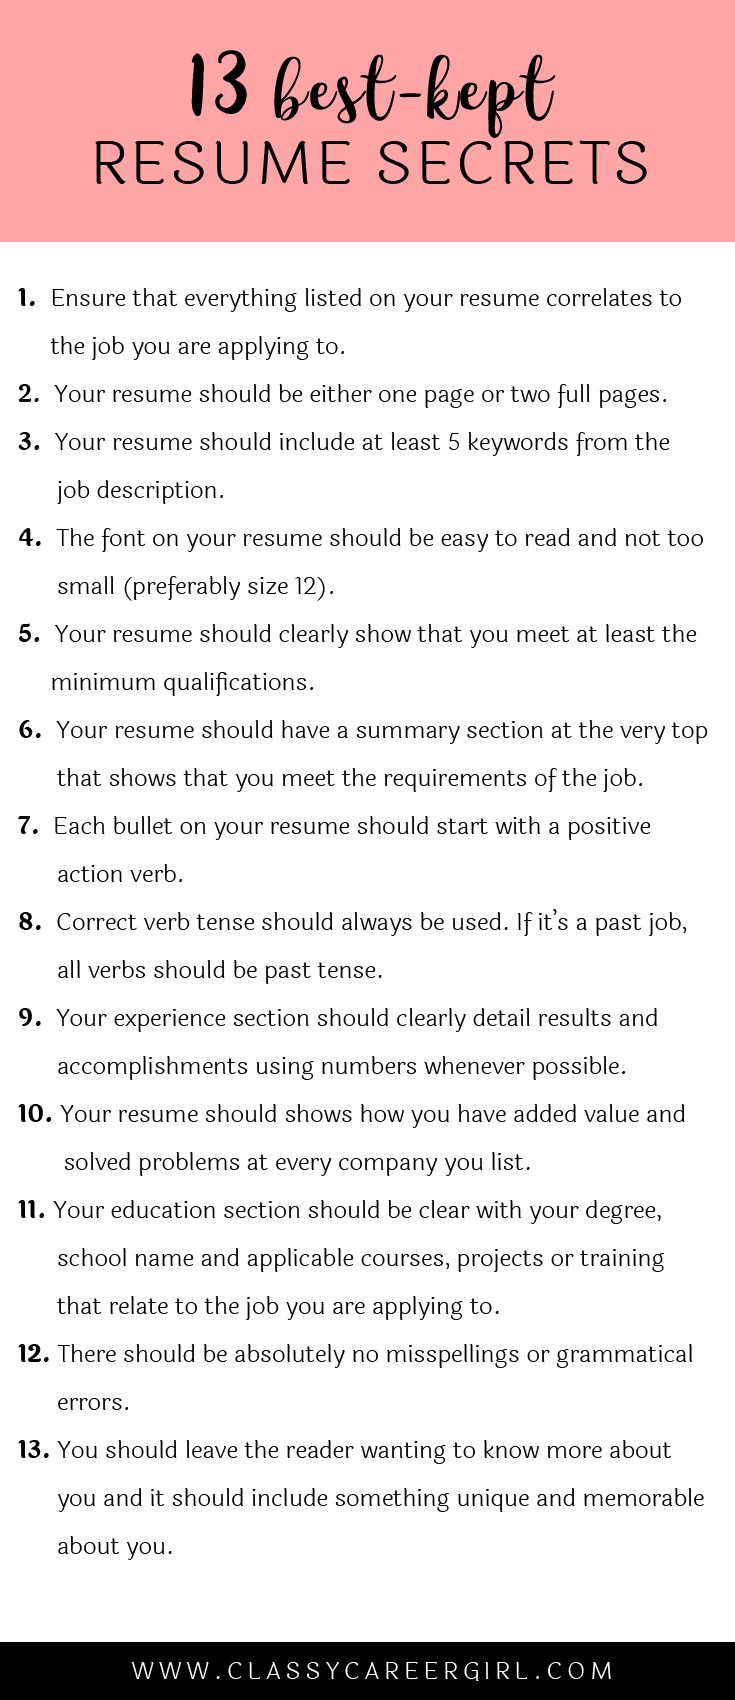 Opposenewapstandardsus  Splendid  Ideas About Resume On Pinterest  Cv Format Resume Cv And  With Exciting Some Hiring Managers Will Toss Your Resume Out If You Dont Know These  With Alluring How To Write An Objective For A Resume Also Keywords For Resumes In Addition How To Do A Resume For A Job And Resumes  As Well As How To Set Up A Resume Additionally Visual Resume From Pinterestcom With Opposenewapstandardsus  Exciting  Ideas About Resume On Pinterest  Cv Format Resume Cv And  With Alluring Some Hiring Managers Will Toss Your Resume Out If You Dont Know These  And Splendid How To Write An Objective For A Resume Also Keywords For Resumes In Addition How To Do A Resume For A Job From Pinterestcom